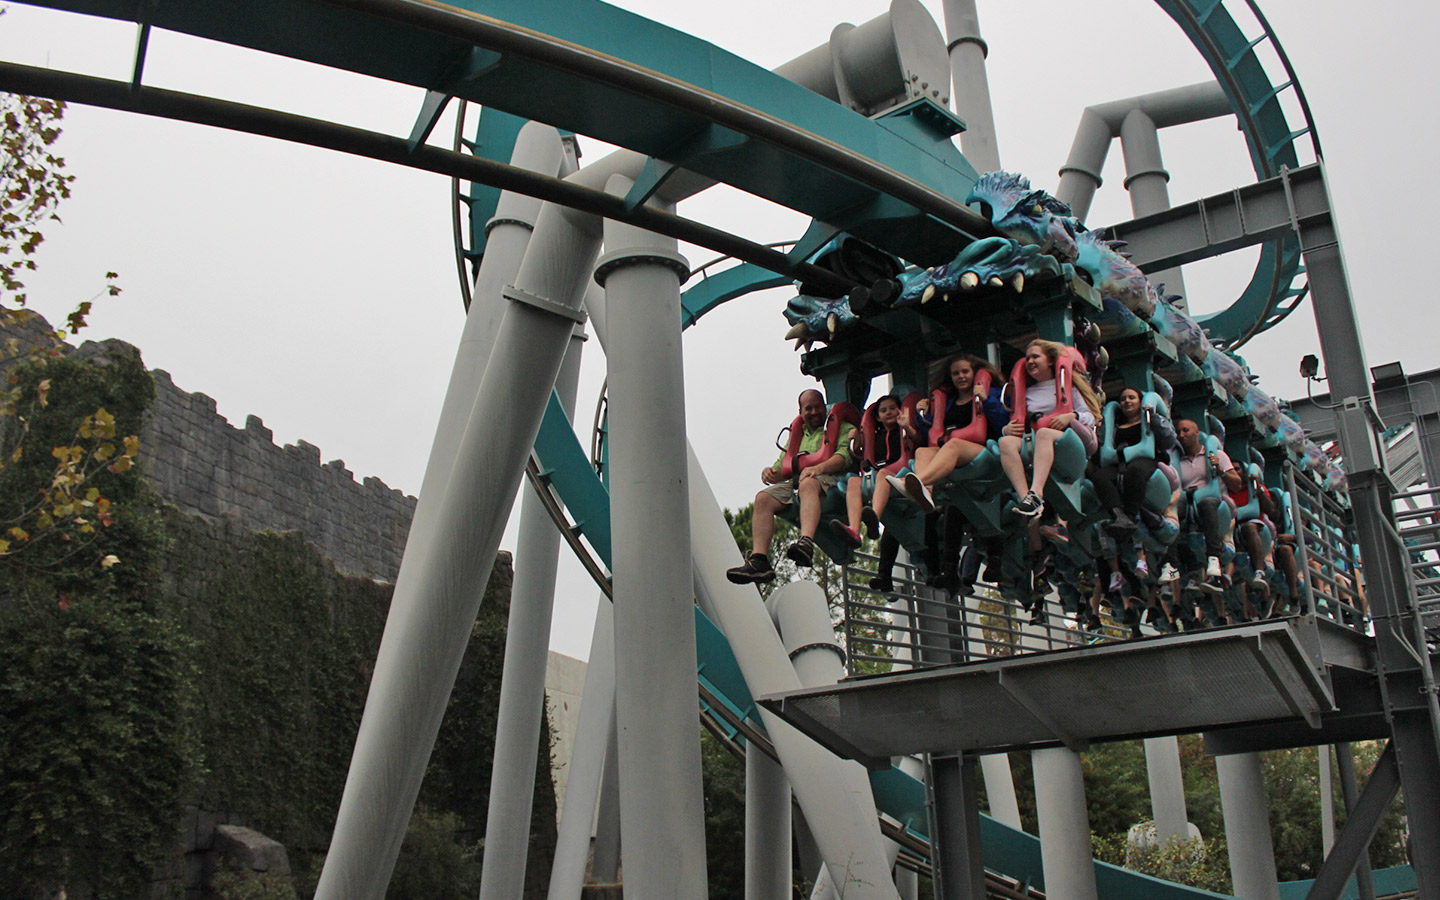 Become a part of the Triwizard Tournament on Dragon Challenge in The Wizarding World of Harry Potter at Universal Orlando Resort